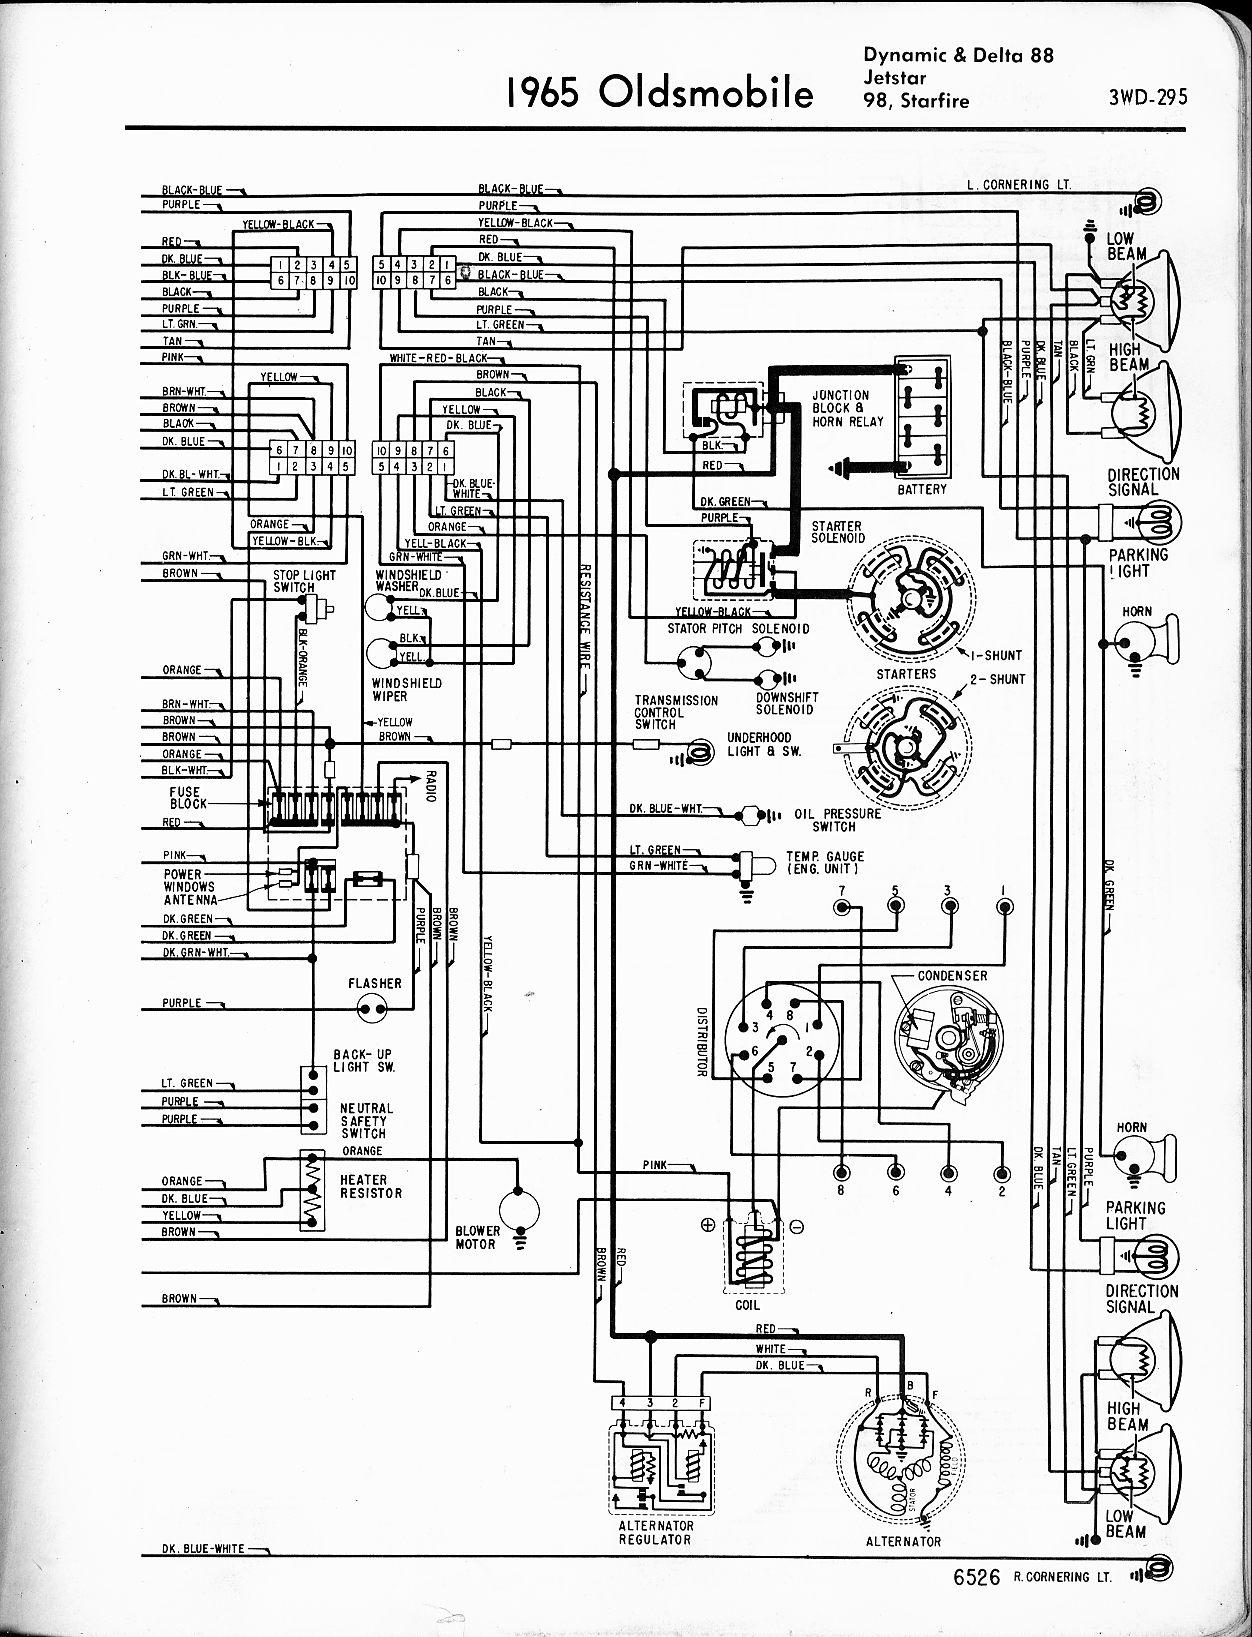 DIAGRAM 1950 Oldsmobile Wiring Diagram FULL Version HD ...